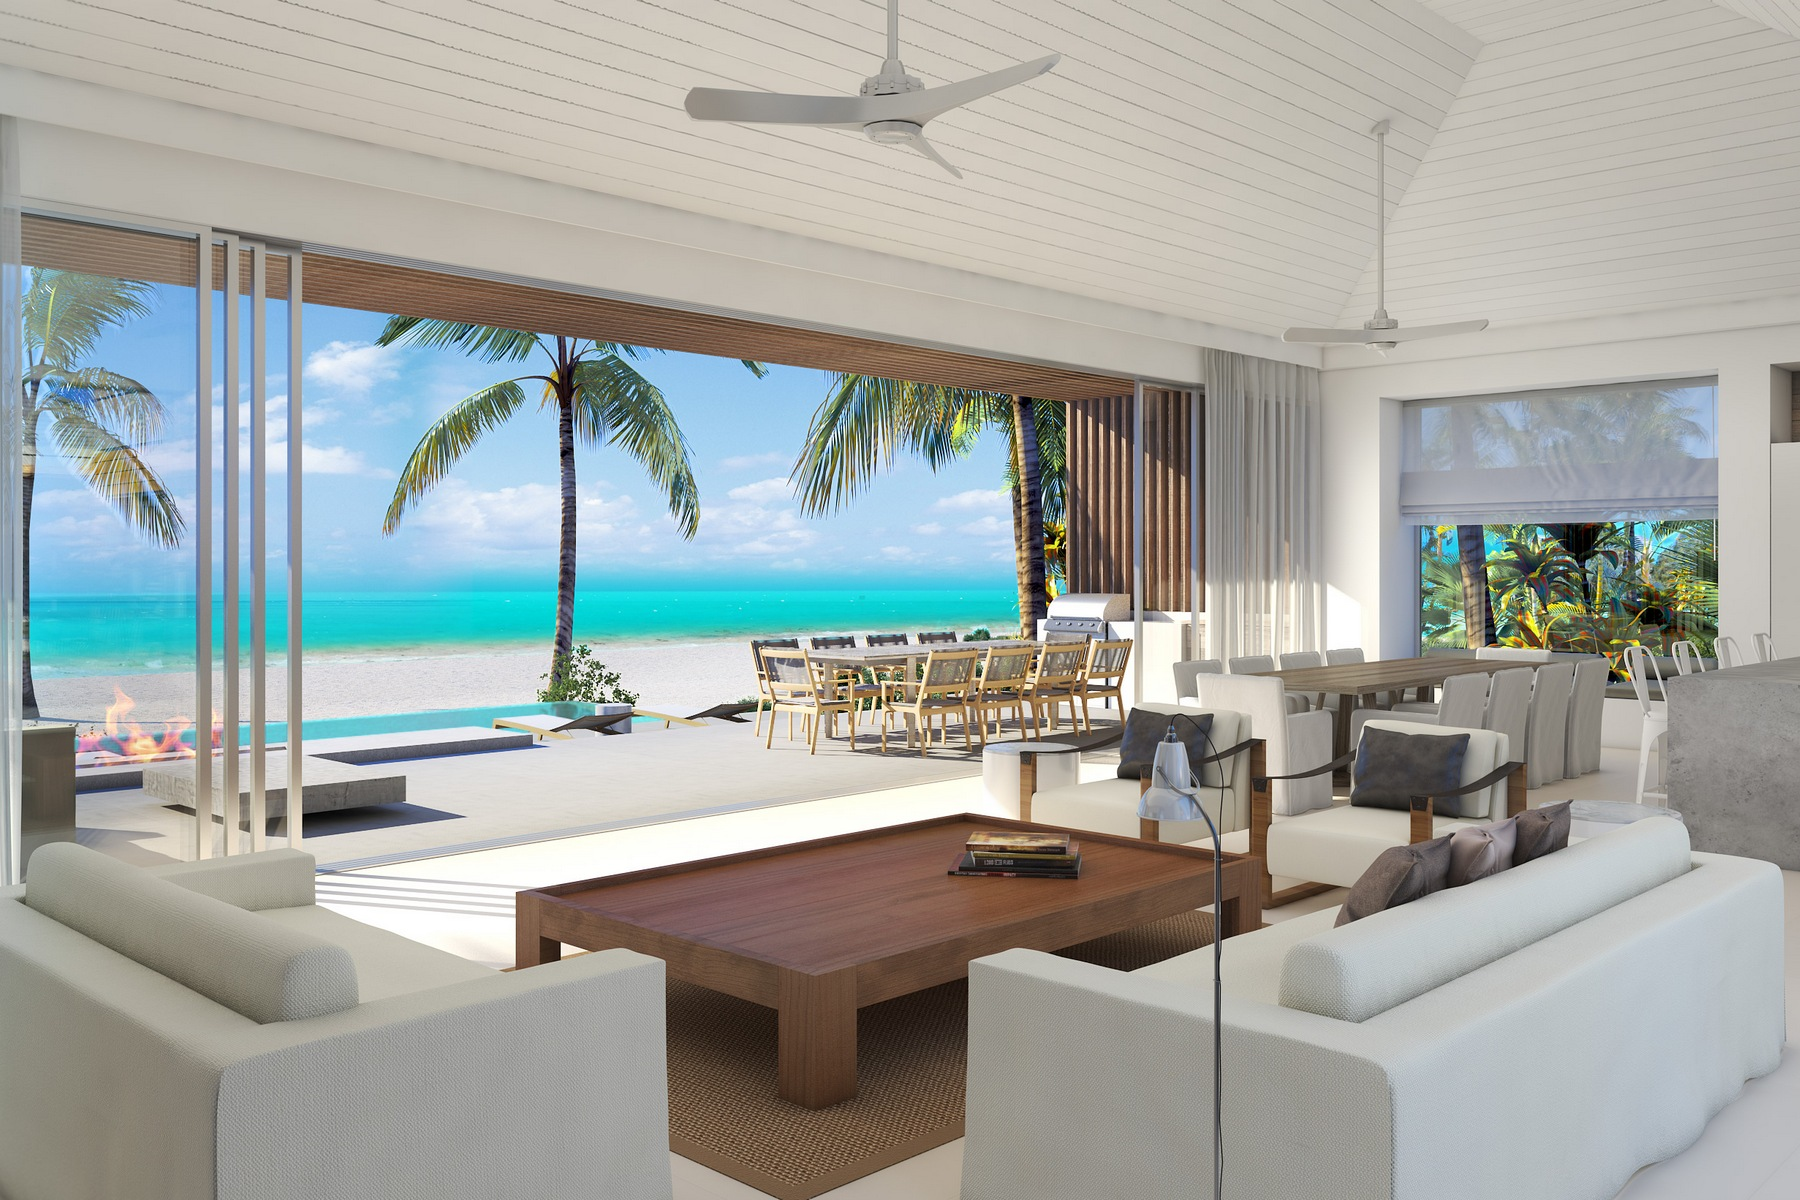 Single Family Home for Sale at BEACH ENCLAVE LONG BAY - Design One 5B Beachfront Long Bay, TCI Turks And Caicos Islands